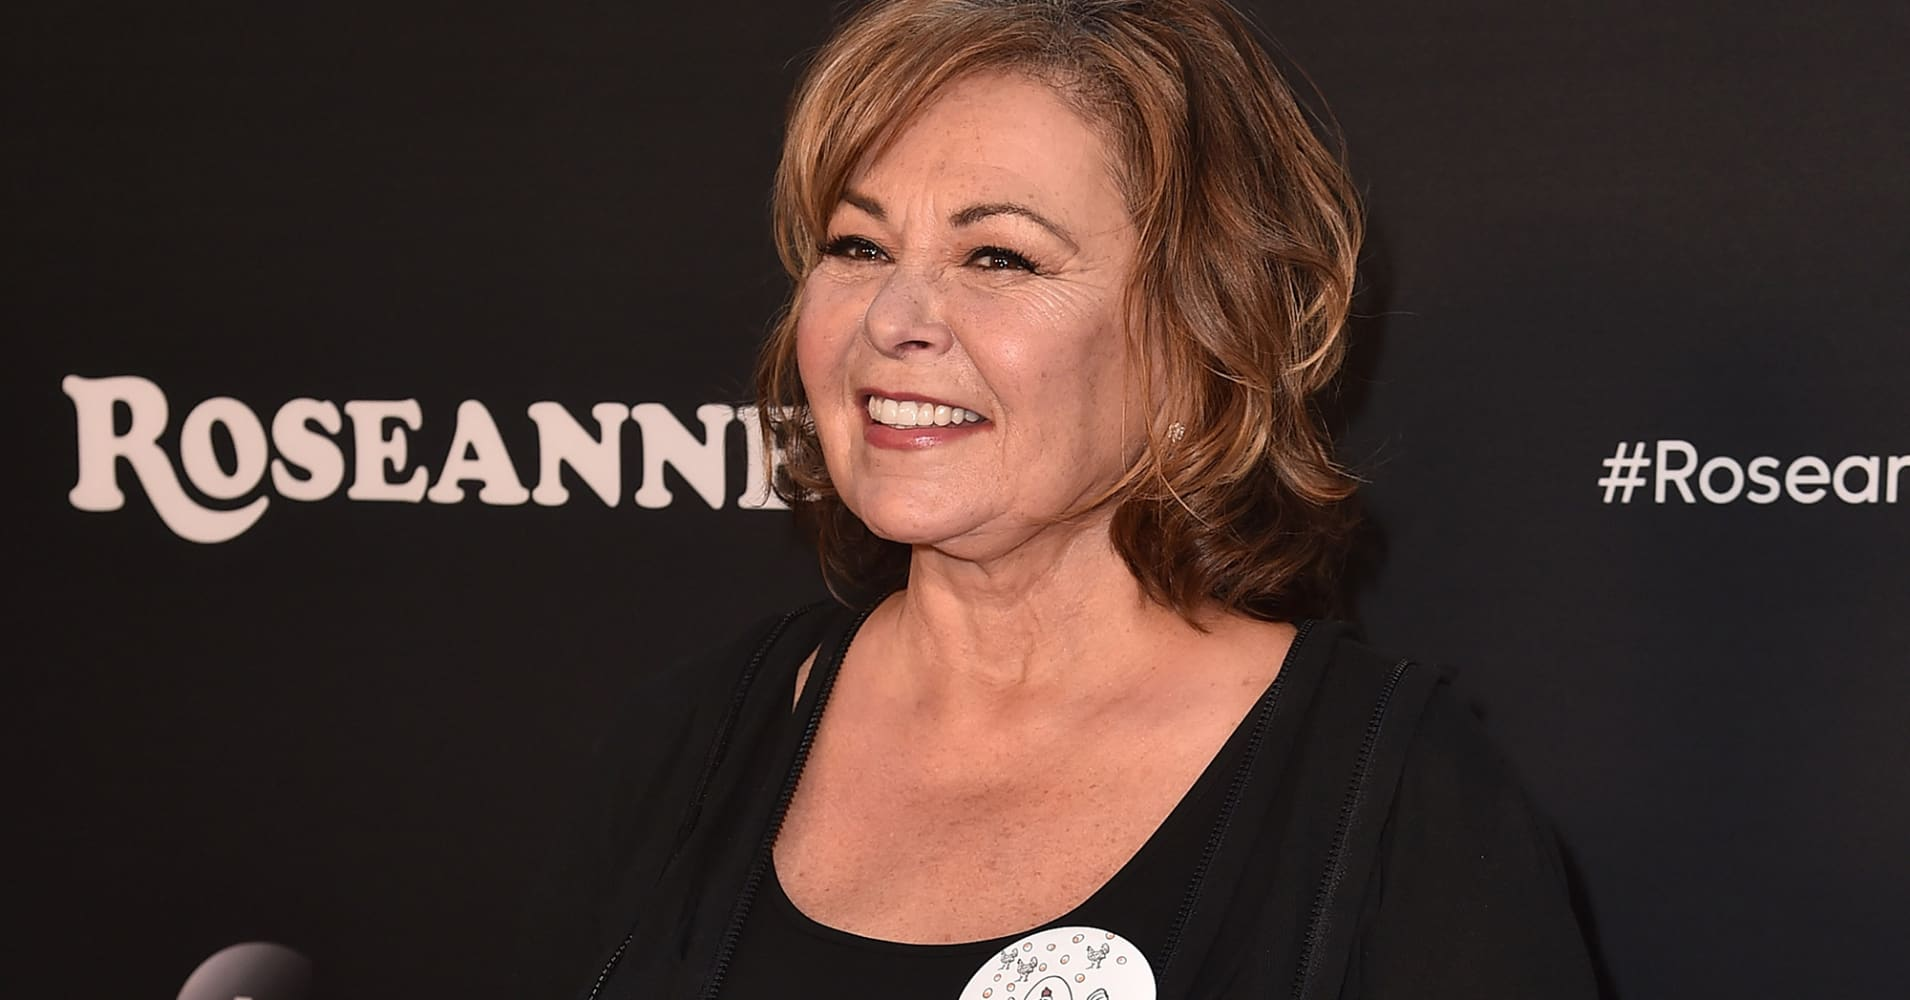 Roseanne Barr apologizes for racist tweet, but retweets people who support her